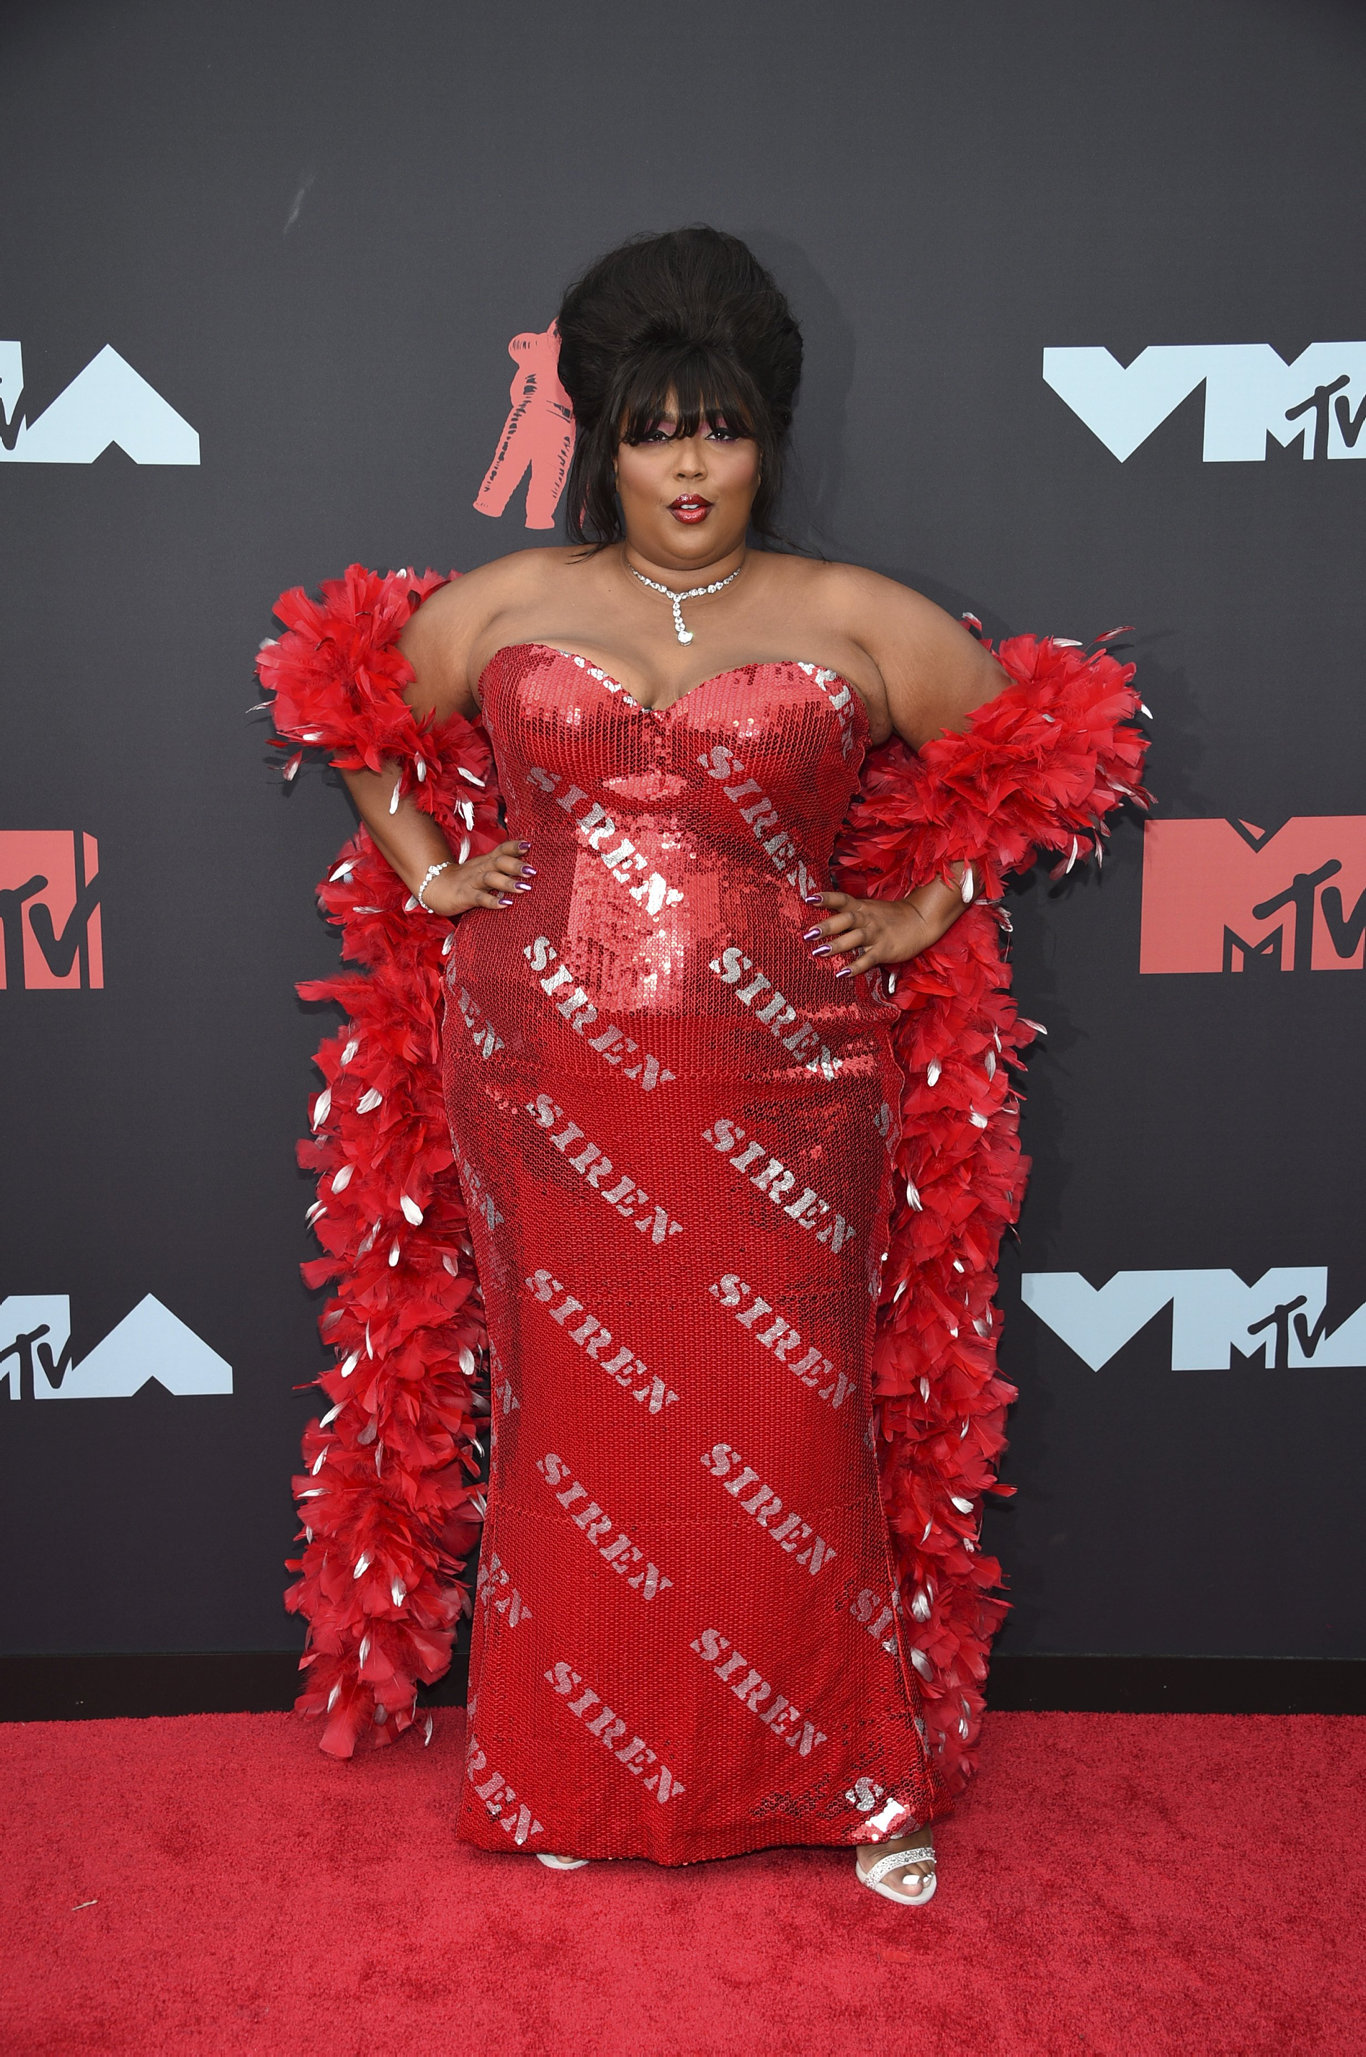 Lizzo arrives at the MTV Video Music Awards at the Prudential Center on Monday, Aug. 26, 2019, in Newark, N.J.